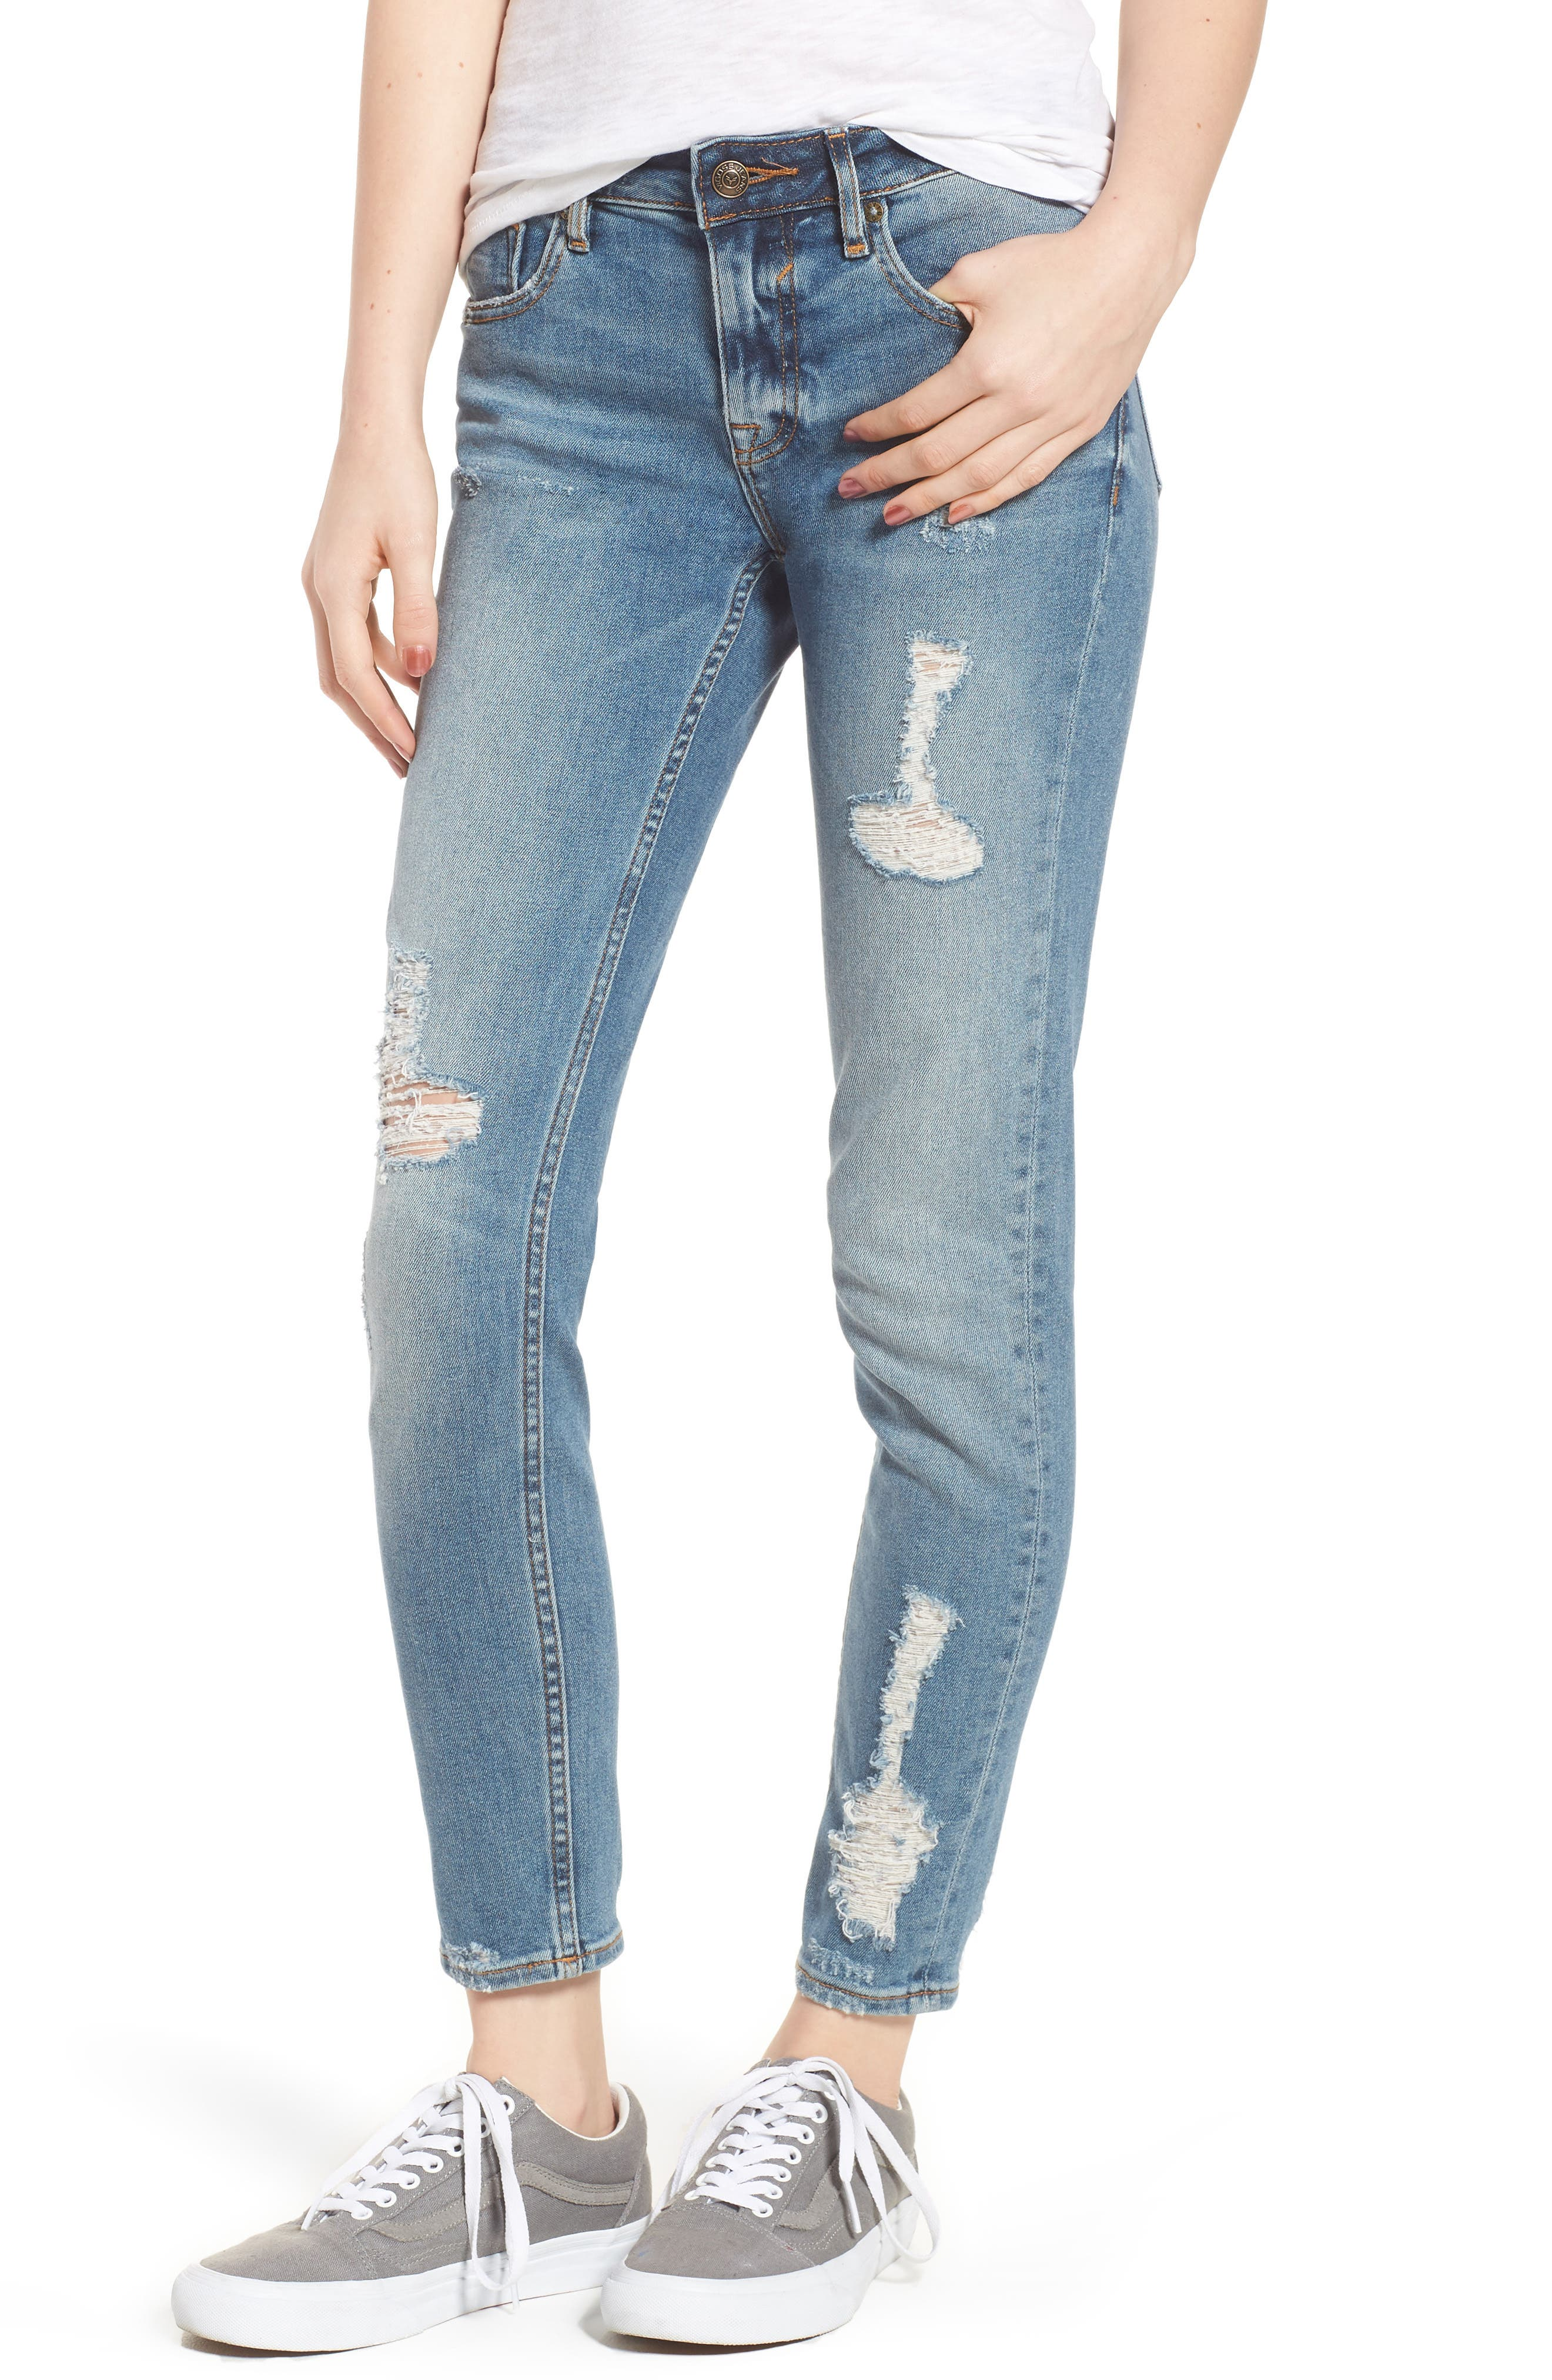 Jagger Decon Distressed Skinny Jeans,                             Main thumbnail 1, color,                             426